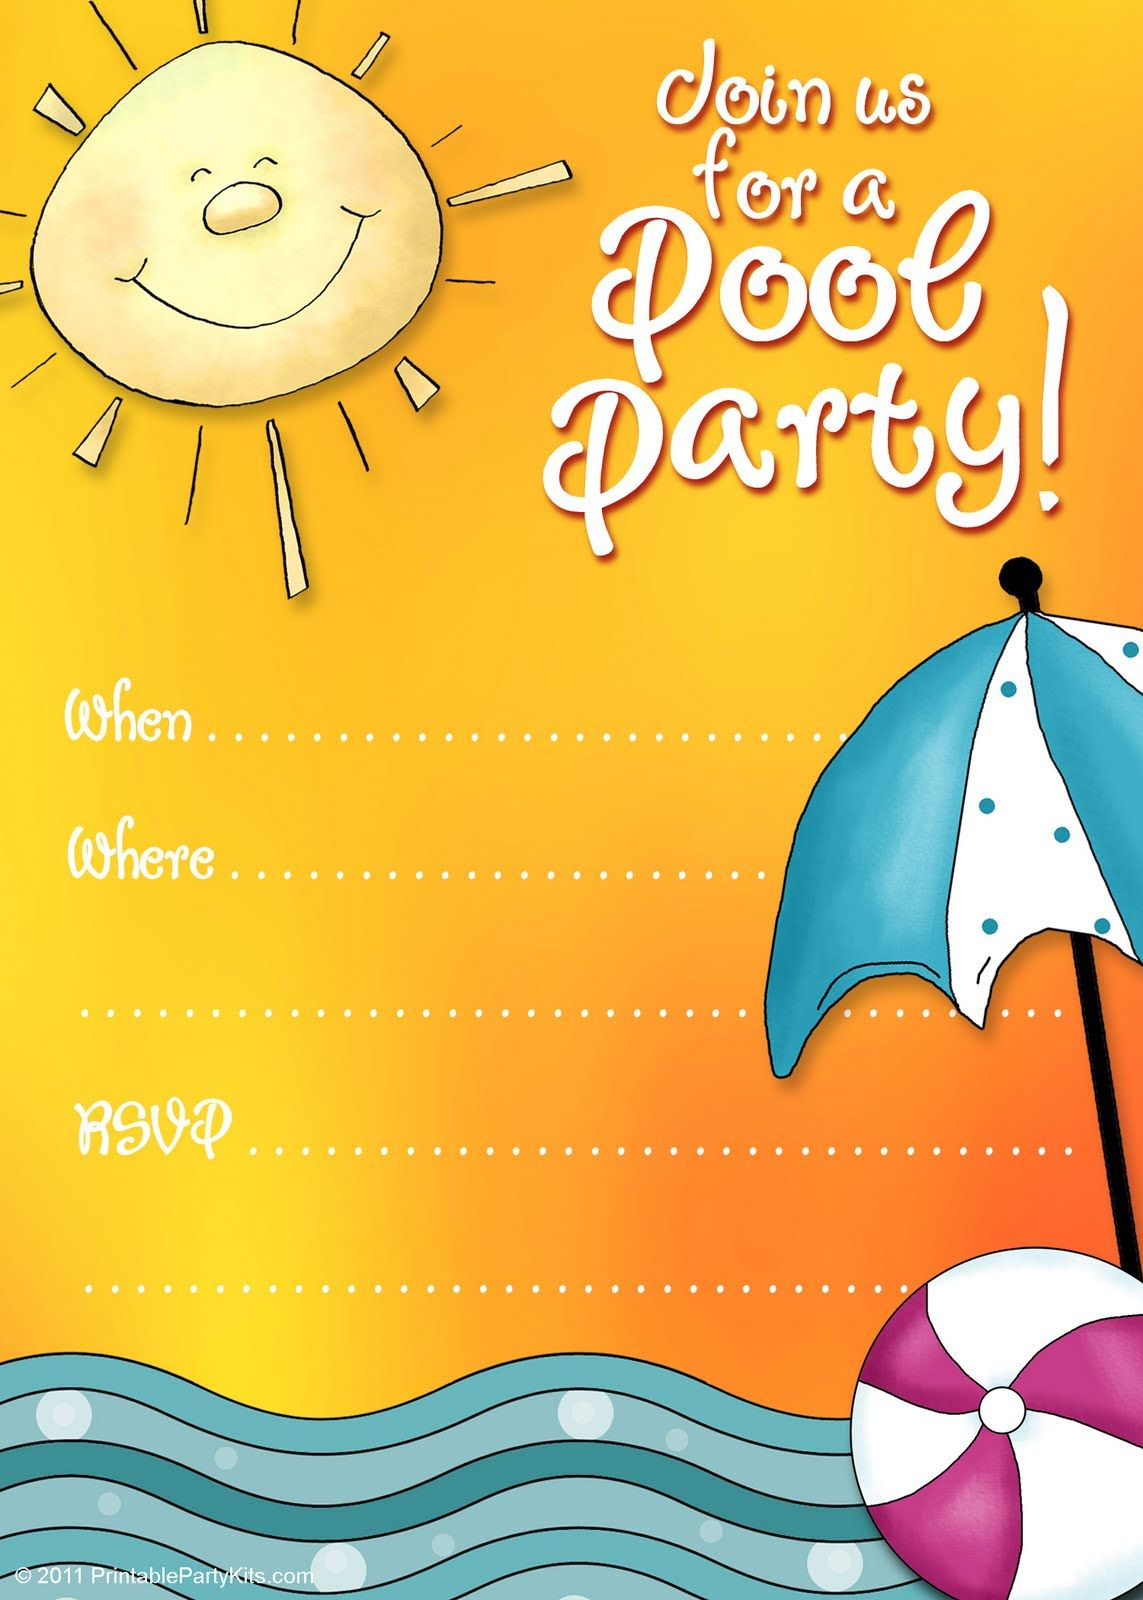 Free Printable Party Invitations: Summer Pool Party Invites - Free Printable Pool Party Birthday Invitations